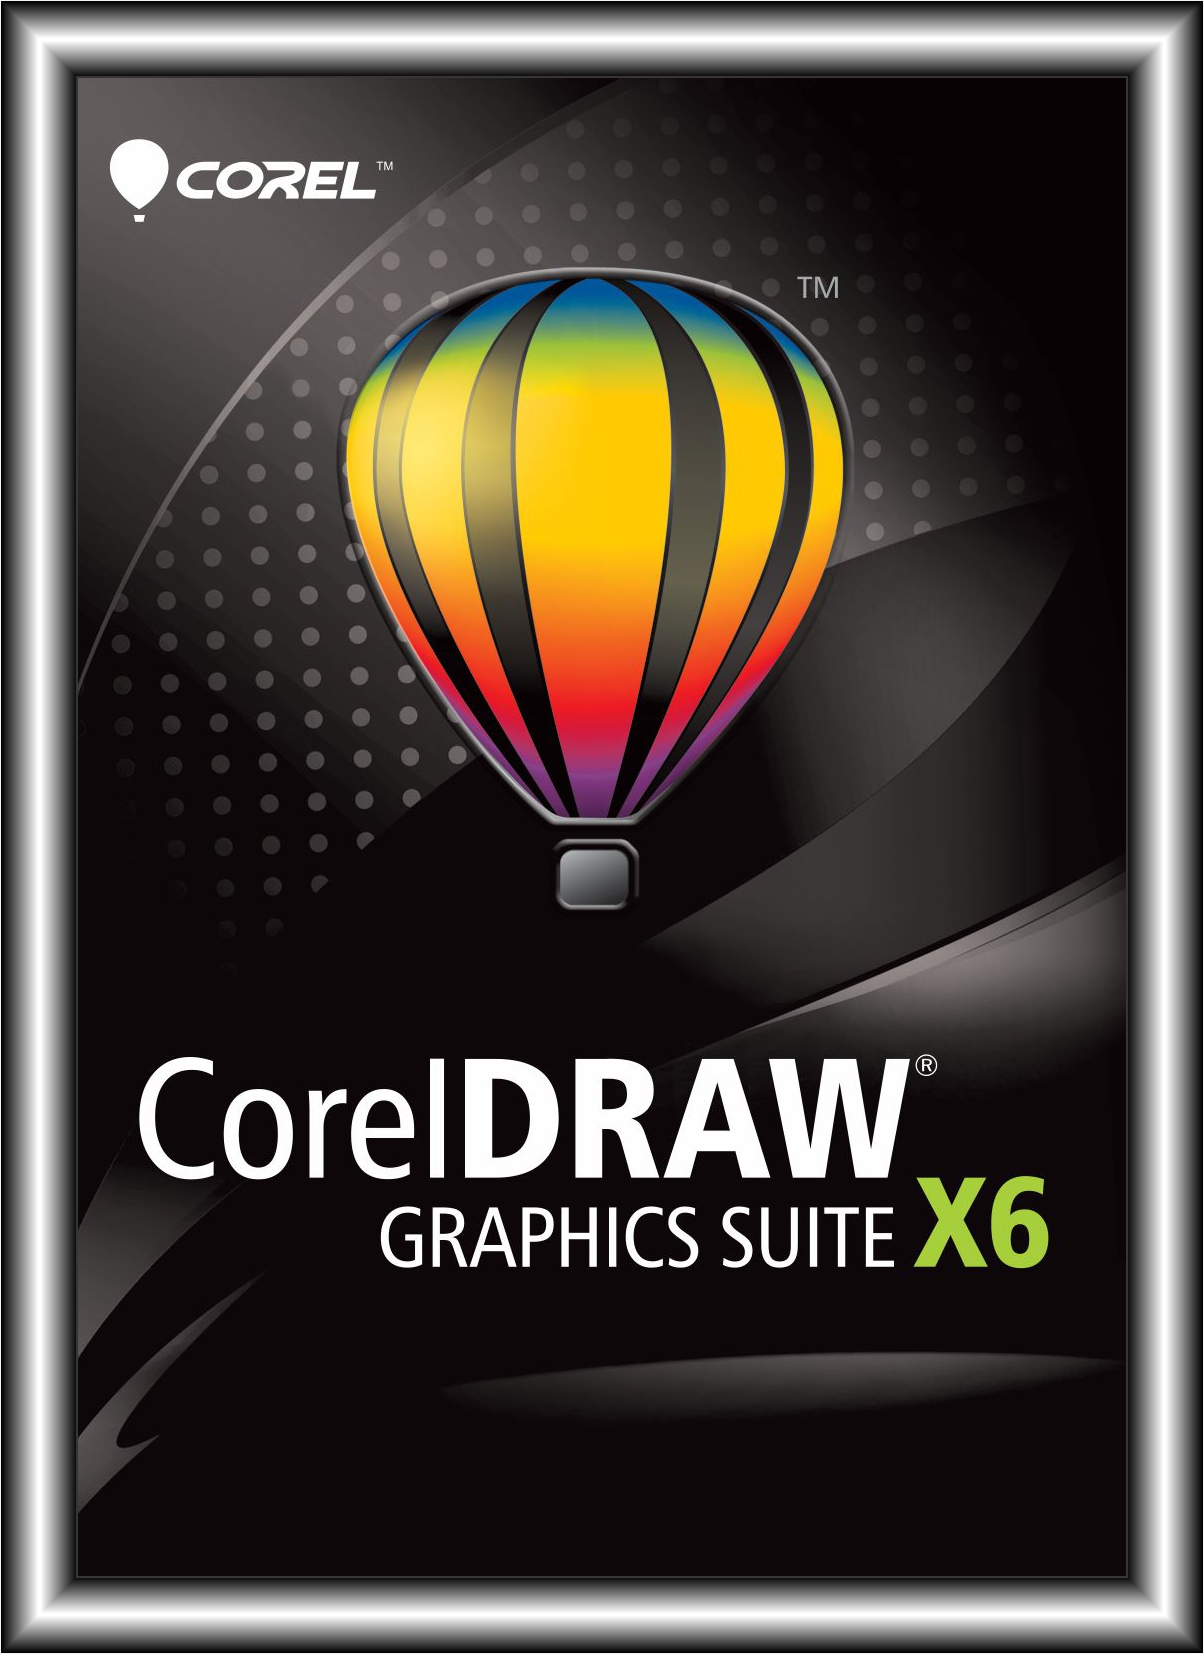 coreldraw graphics suite x6 review summary coreldraw help. Black Bedroom Furniture Sets. Home Design Ideas